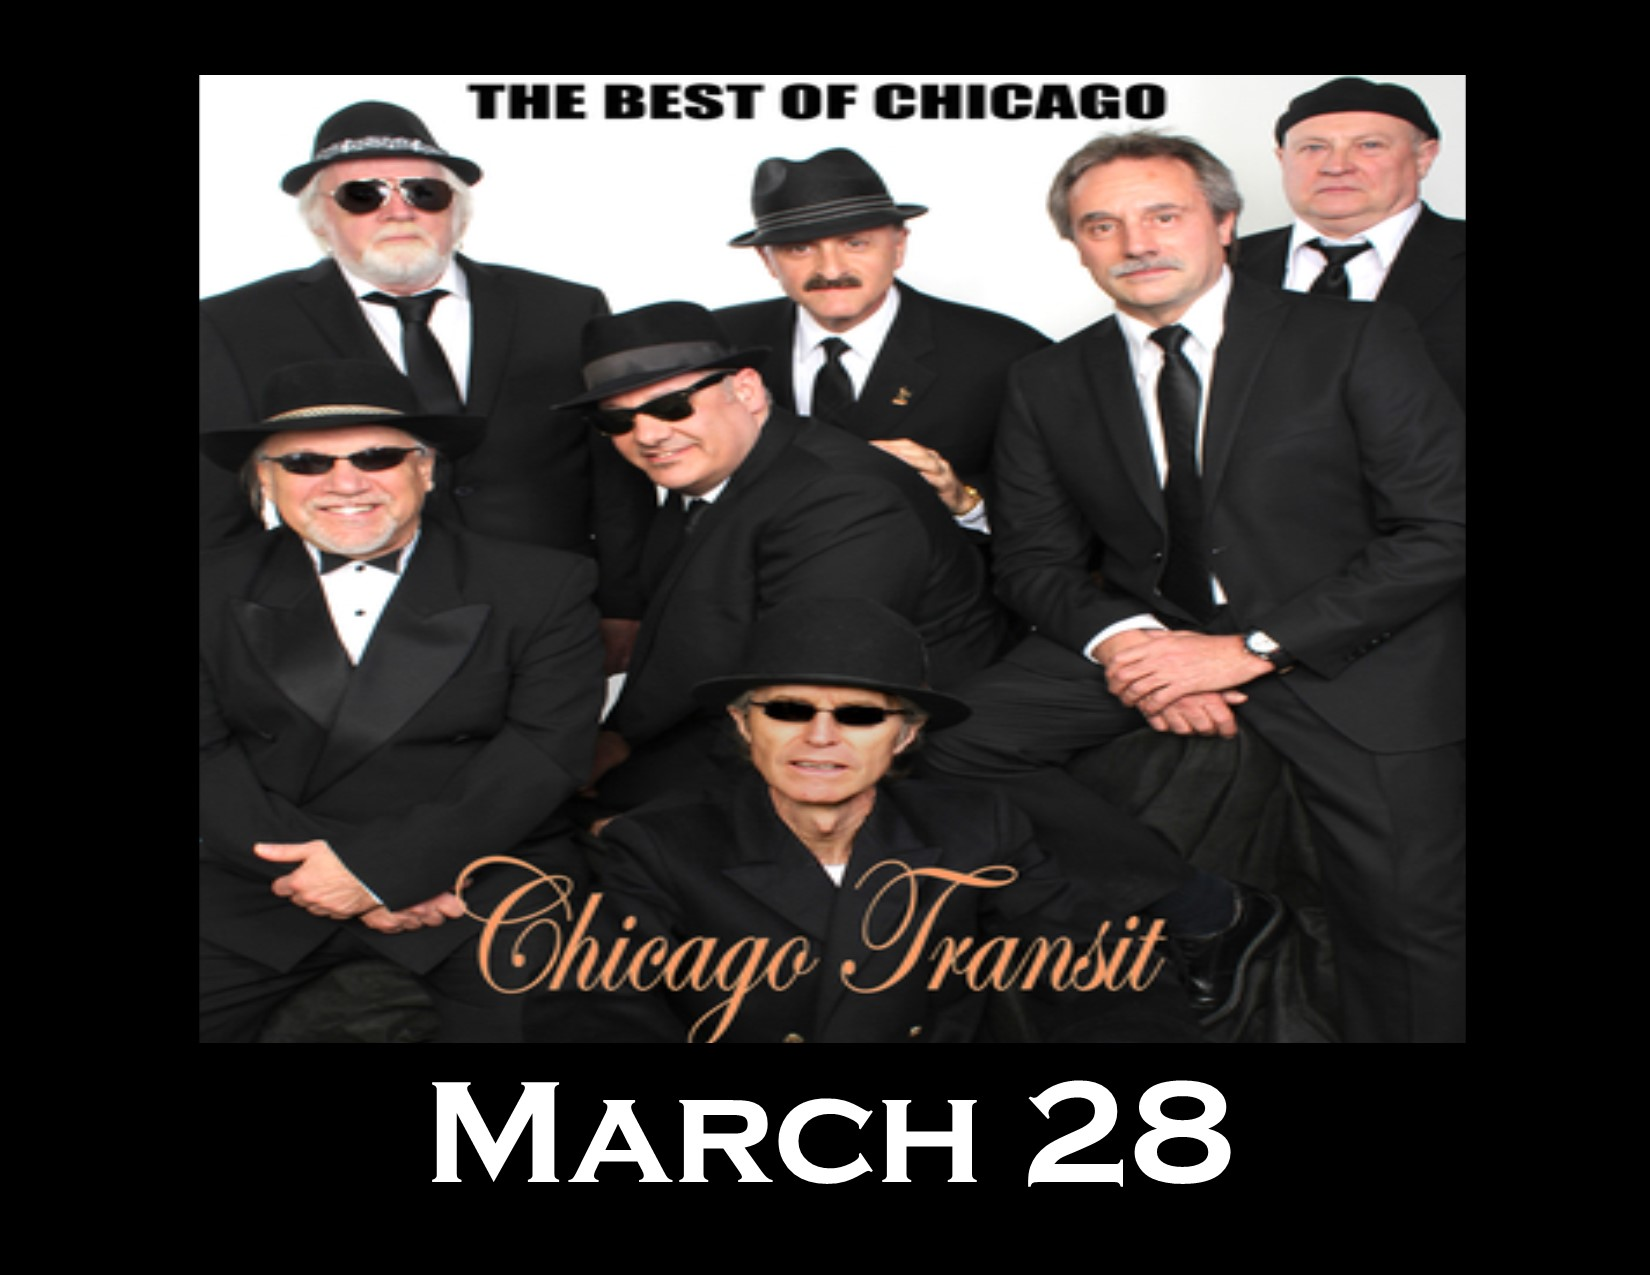 Nov 14 - Chicago Transit - An Evening of Chicago